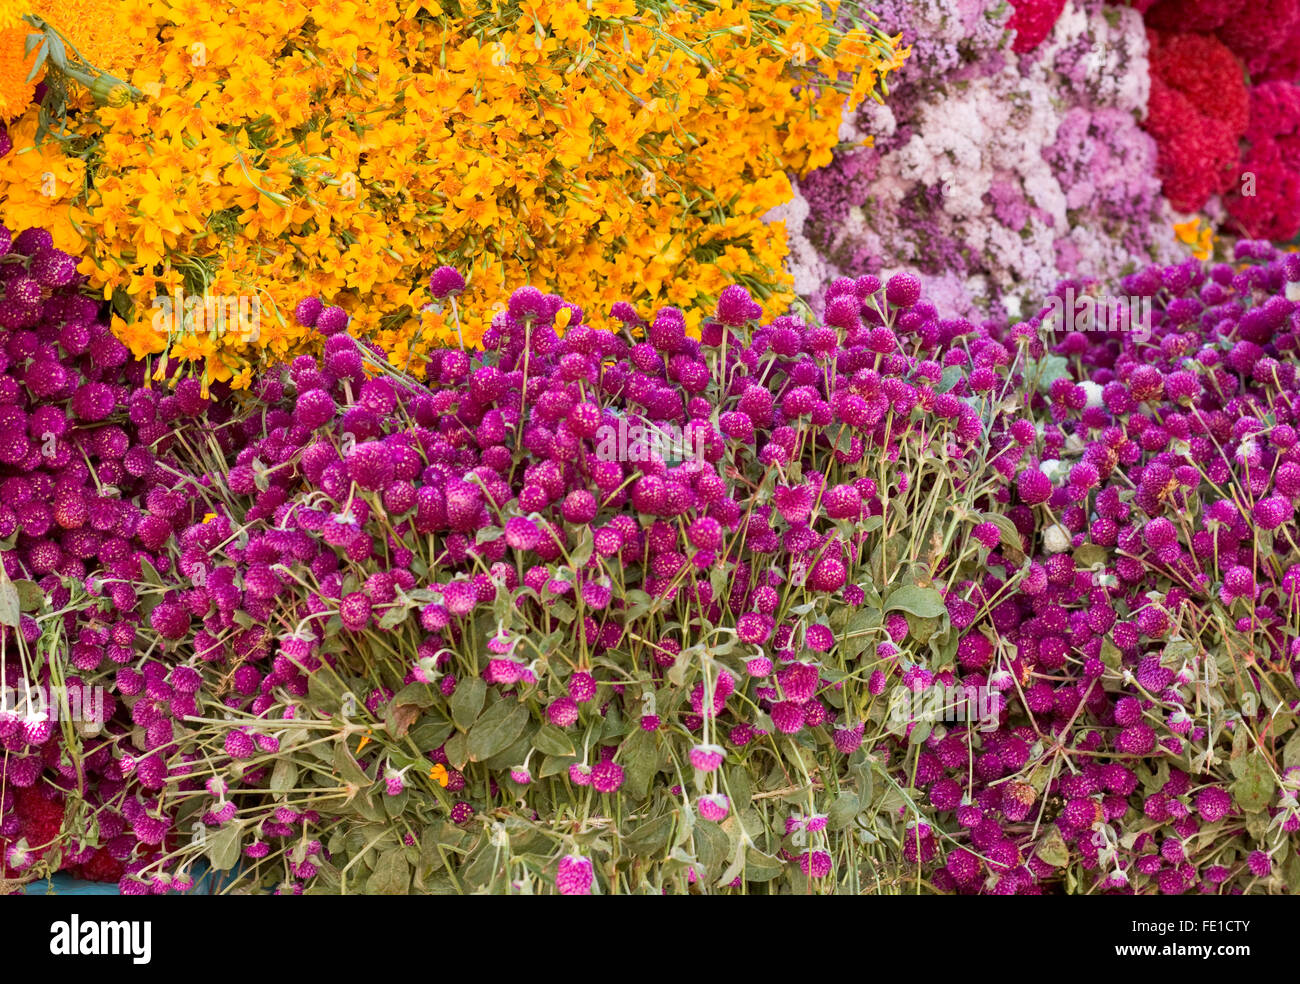 Masses of clover and marigold flowers on sale for the Day of